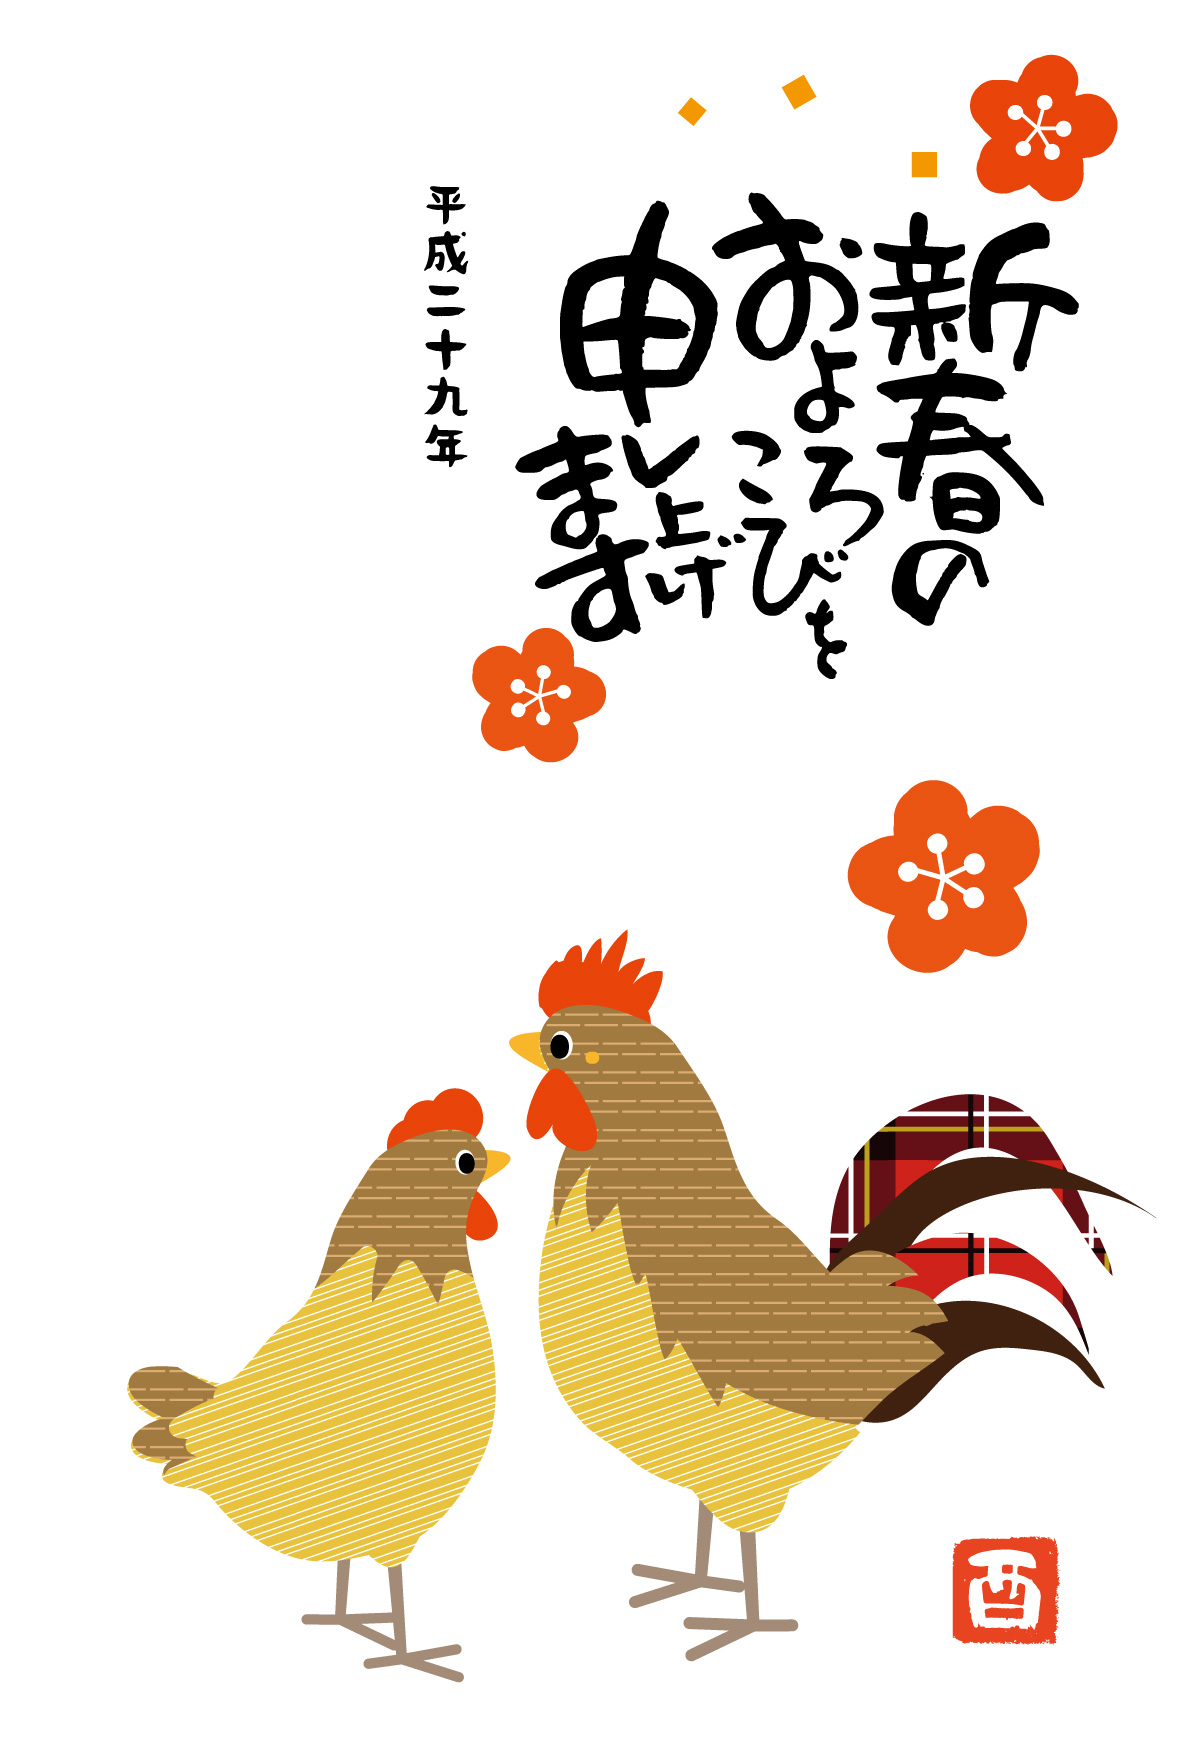 A nengajo for 2017, the year of the rooster. © 年賀状わんパグ